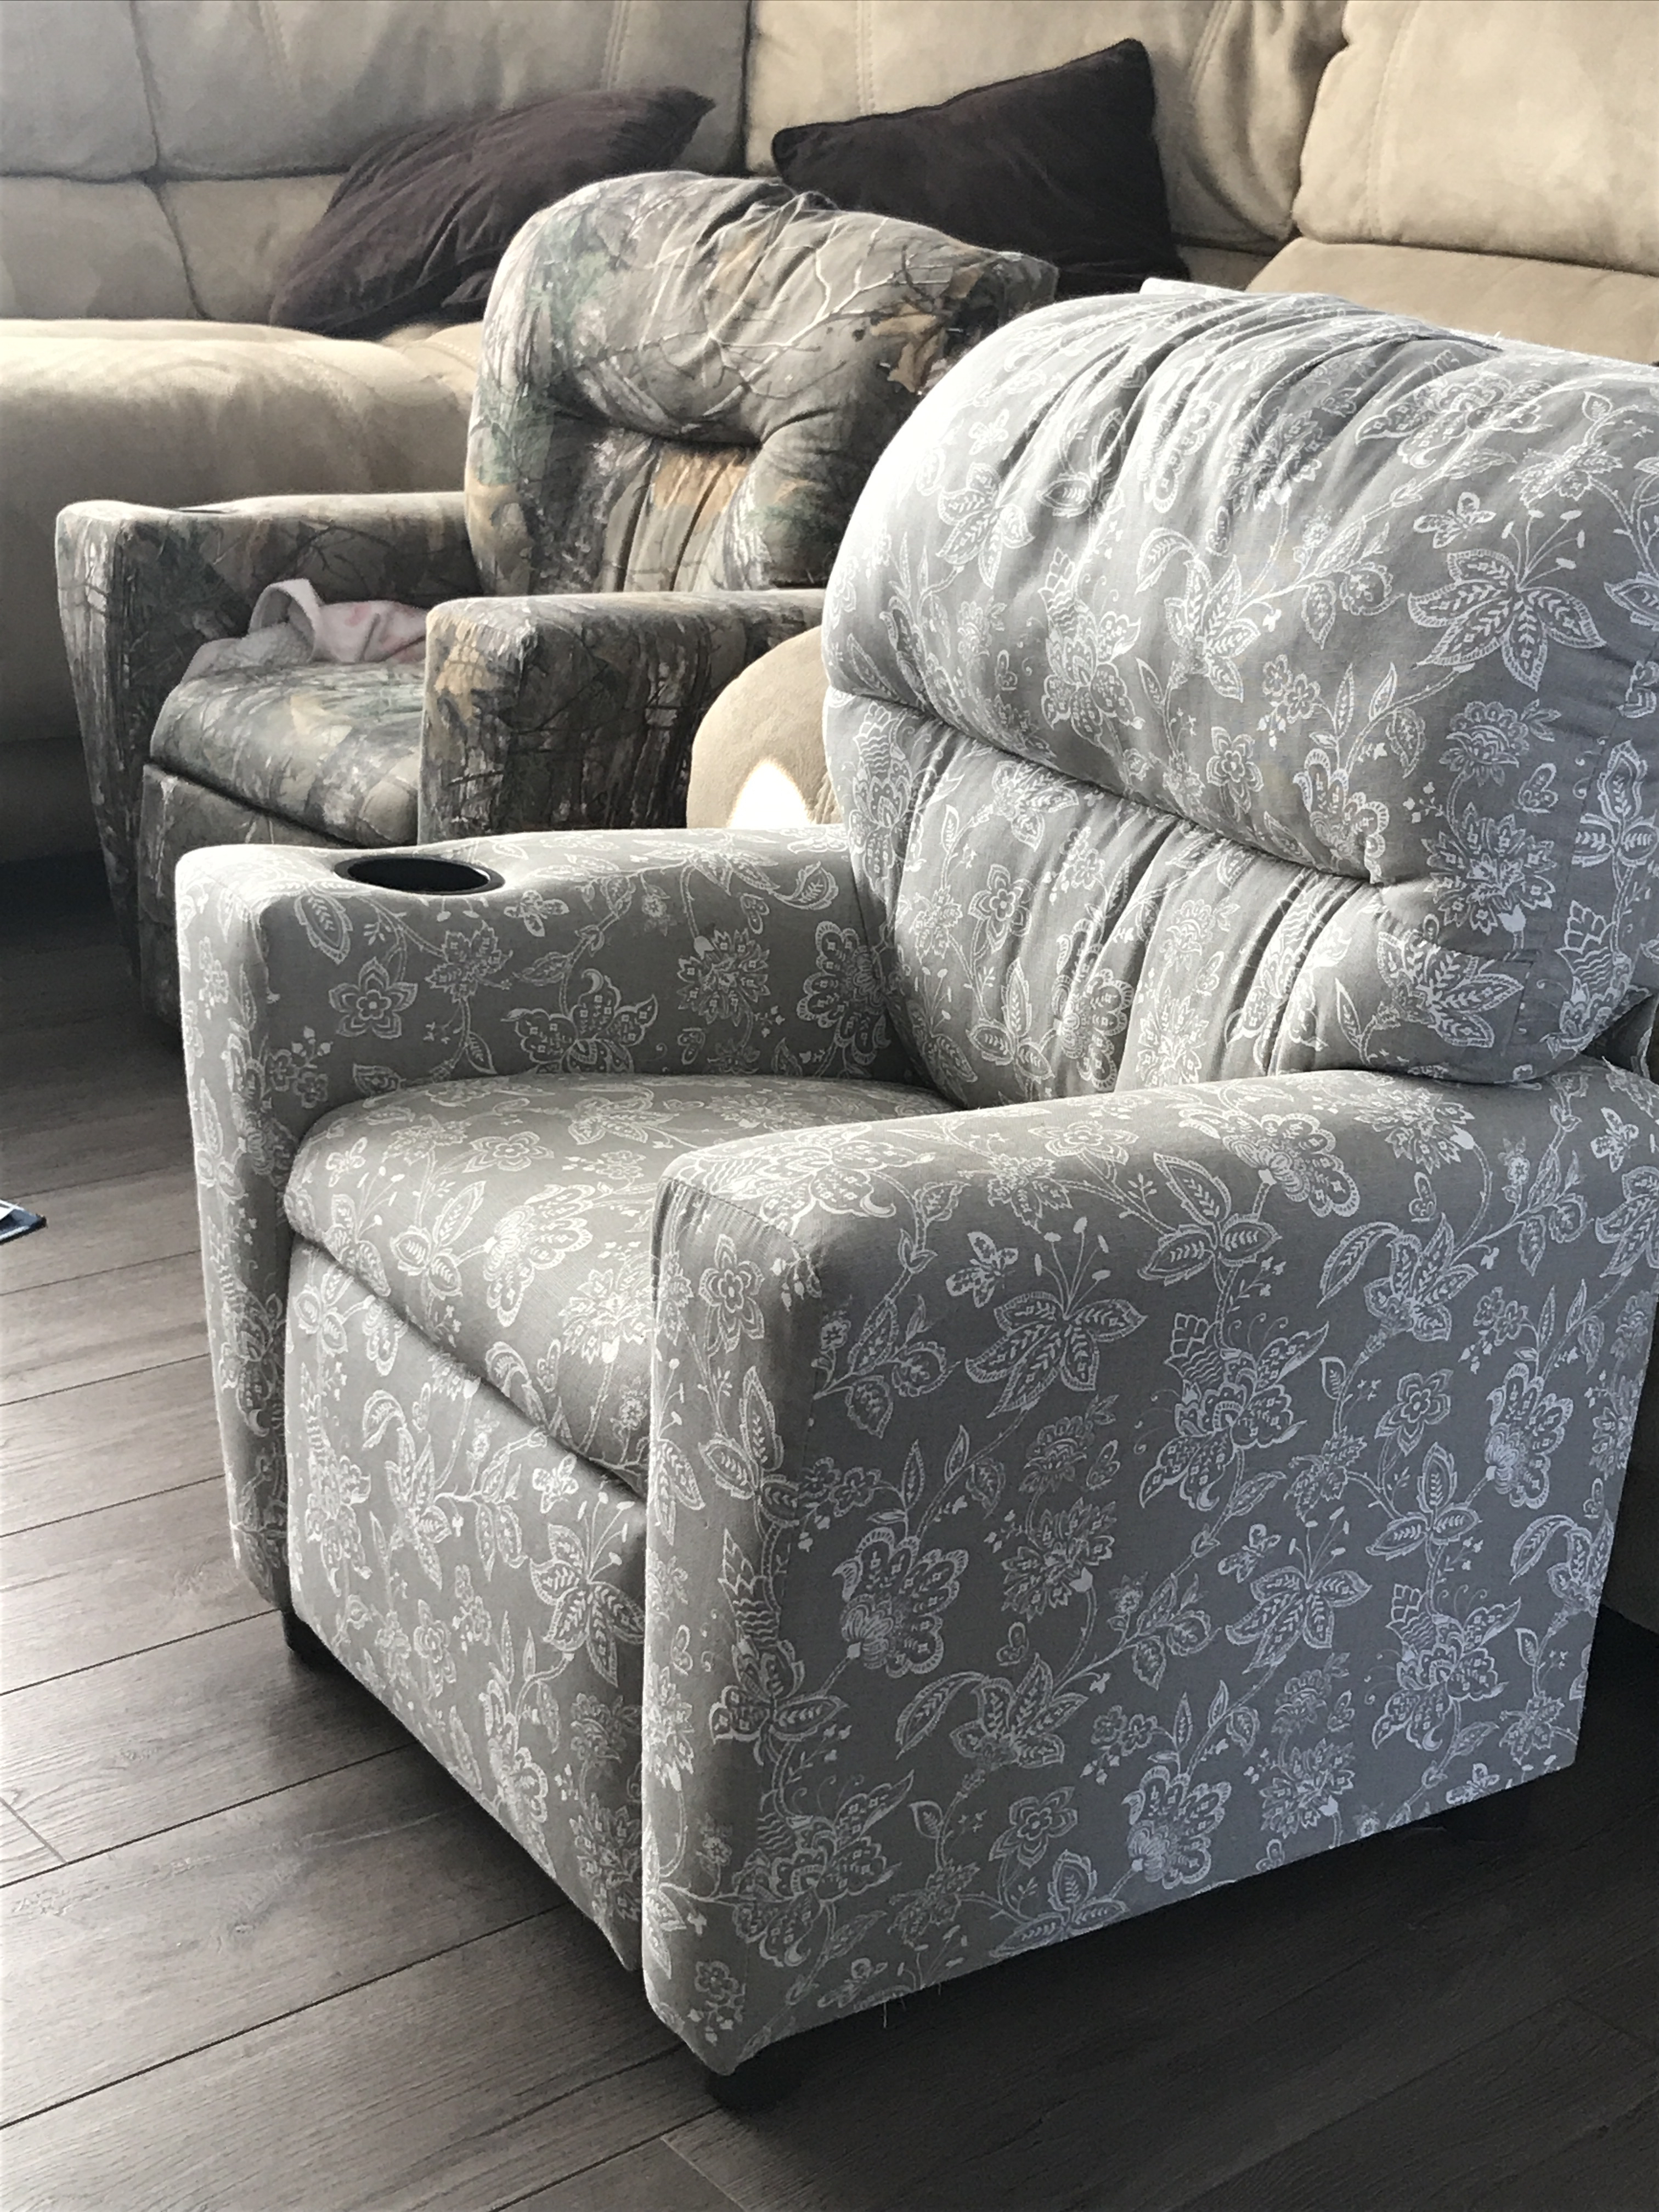 pottery barn anywhere chair cover shrunk western style leather chairs october 2016 babies forums what we got these from wayfair for our kids my son 3 lives in his daughter 1 5 uses the cup holder to hold her snacks but doesn t sit it